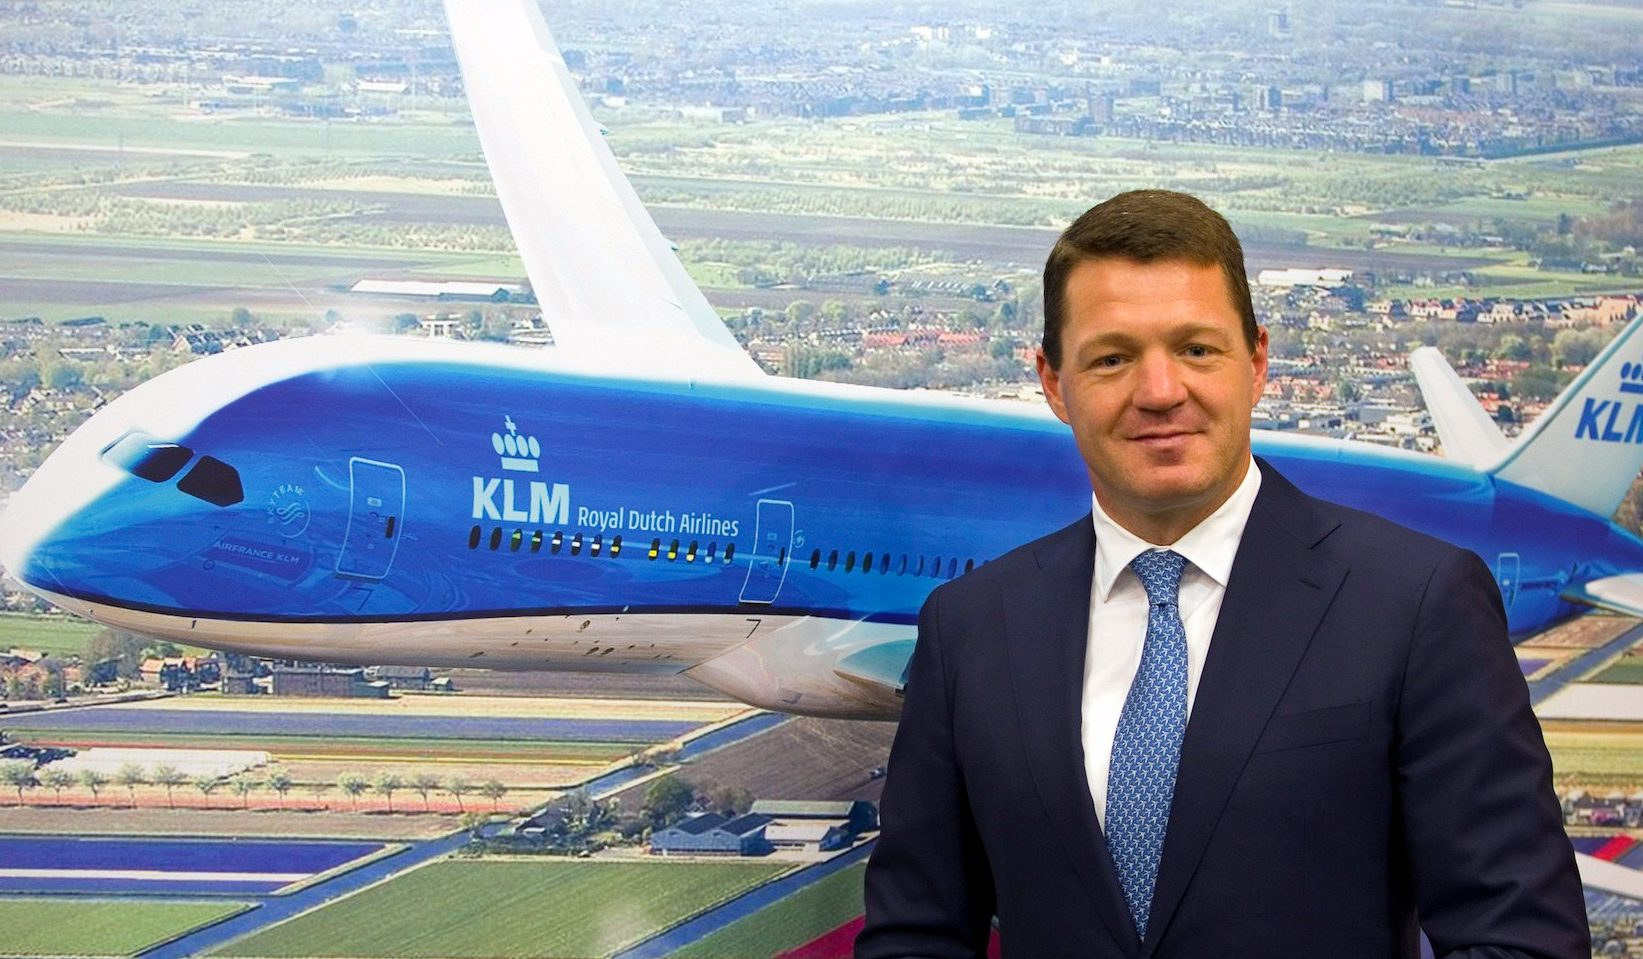 KLM still going strong at 100. Read our exclusive interview